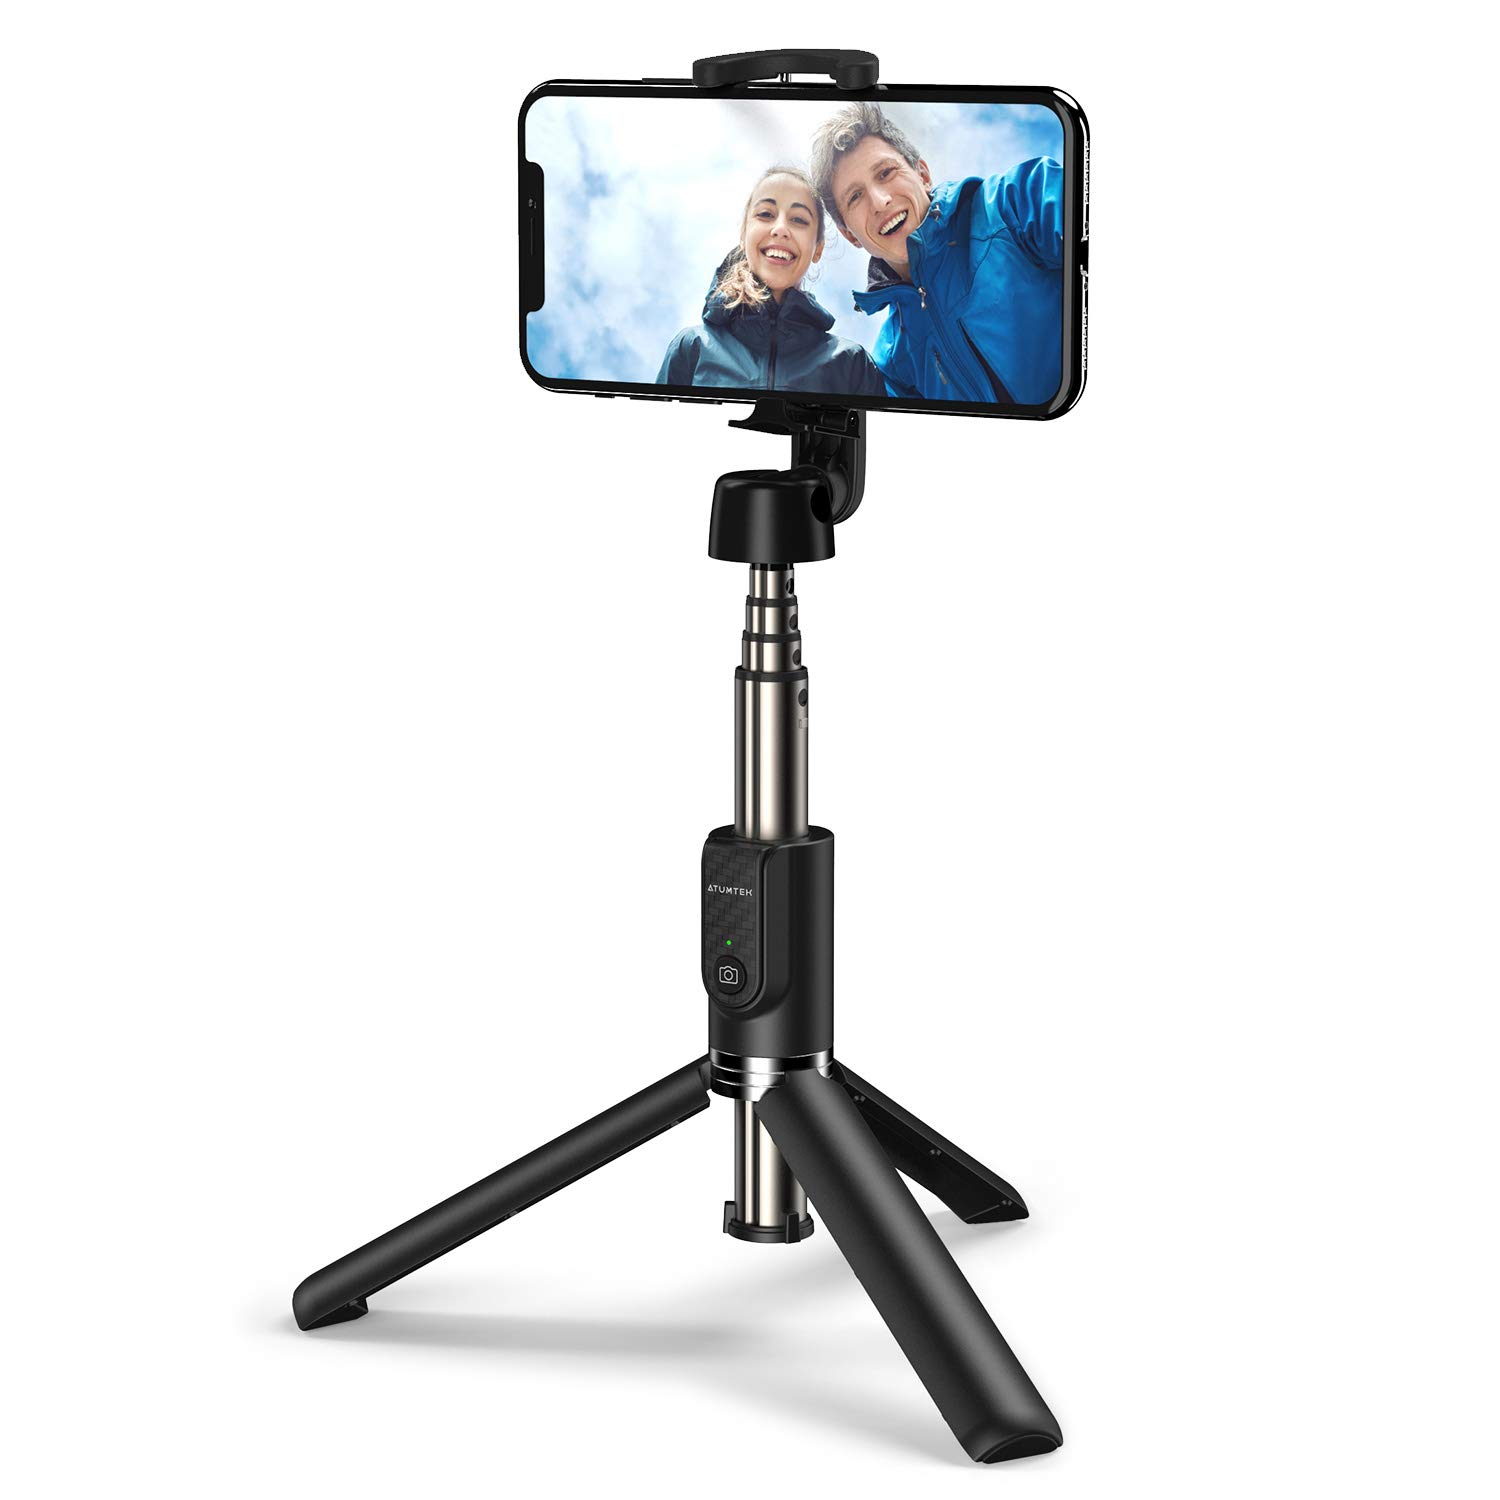 ATUMTEK Bluetooth Selfie Stick Tripod, Mini Extendable Selfie Stick with Wireless Bluetooth Remote for iPhone Xs Max/XR/XS/X, iPhone 8/8 Plus, Samsung Galaxy S10/S9, Note 10/9, Huawei and More by ATUMTEK